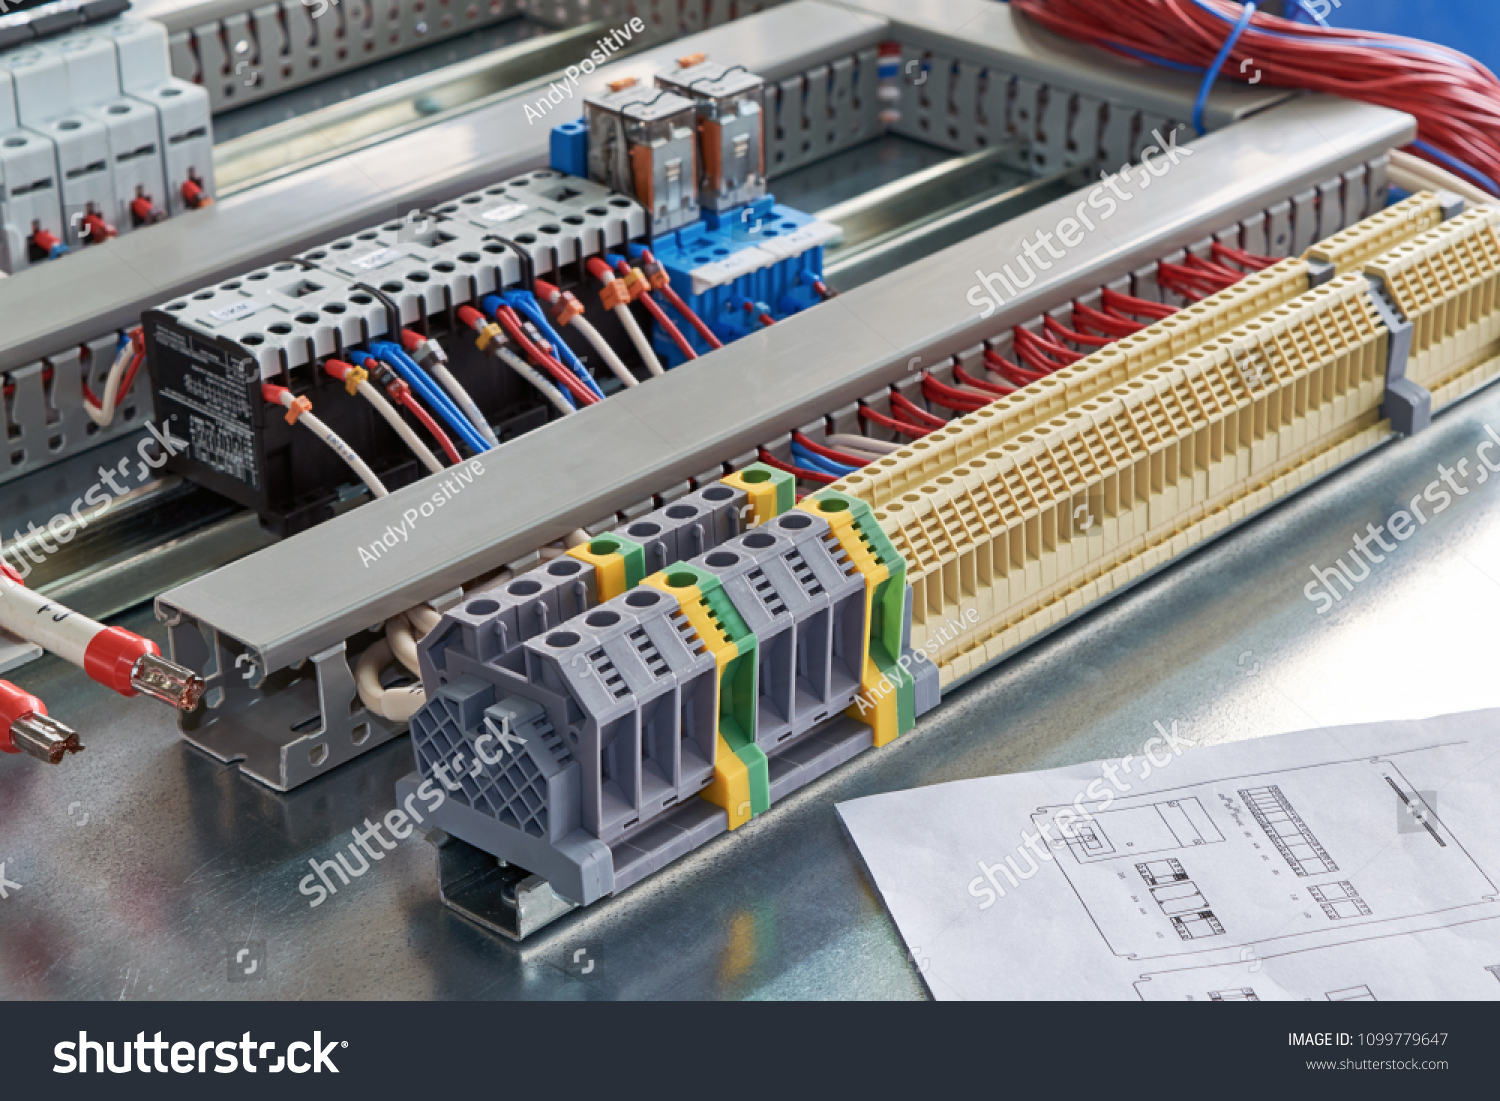 Terminals Contactors Relays Circuit Breakers Electrical Stock Photo ...